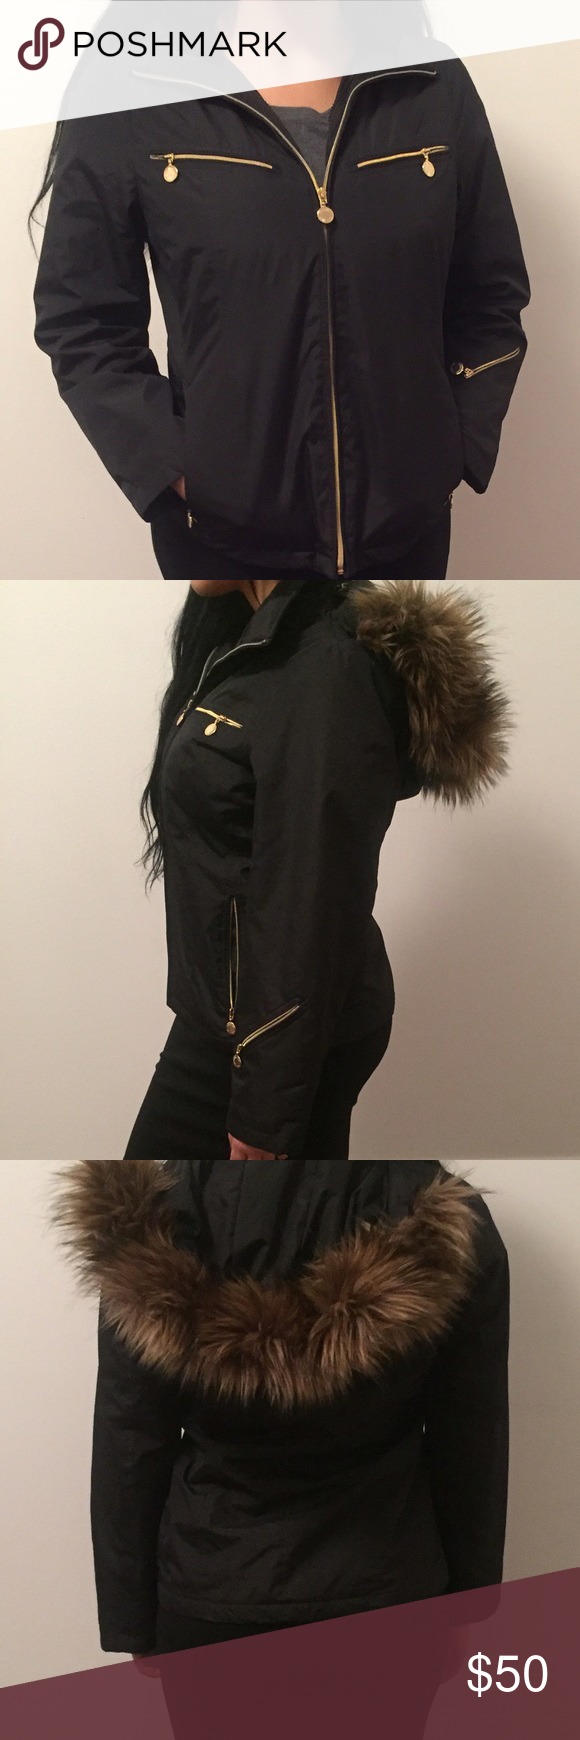 Calvin Klein Jacket with removable fur hat Calvin Klein